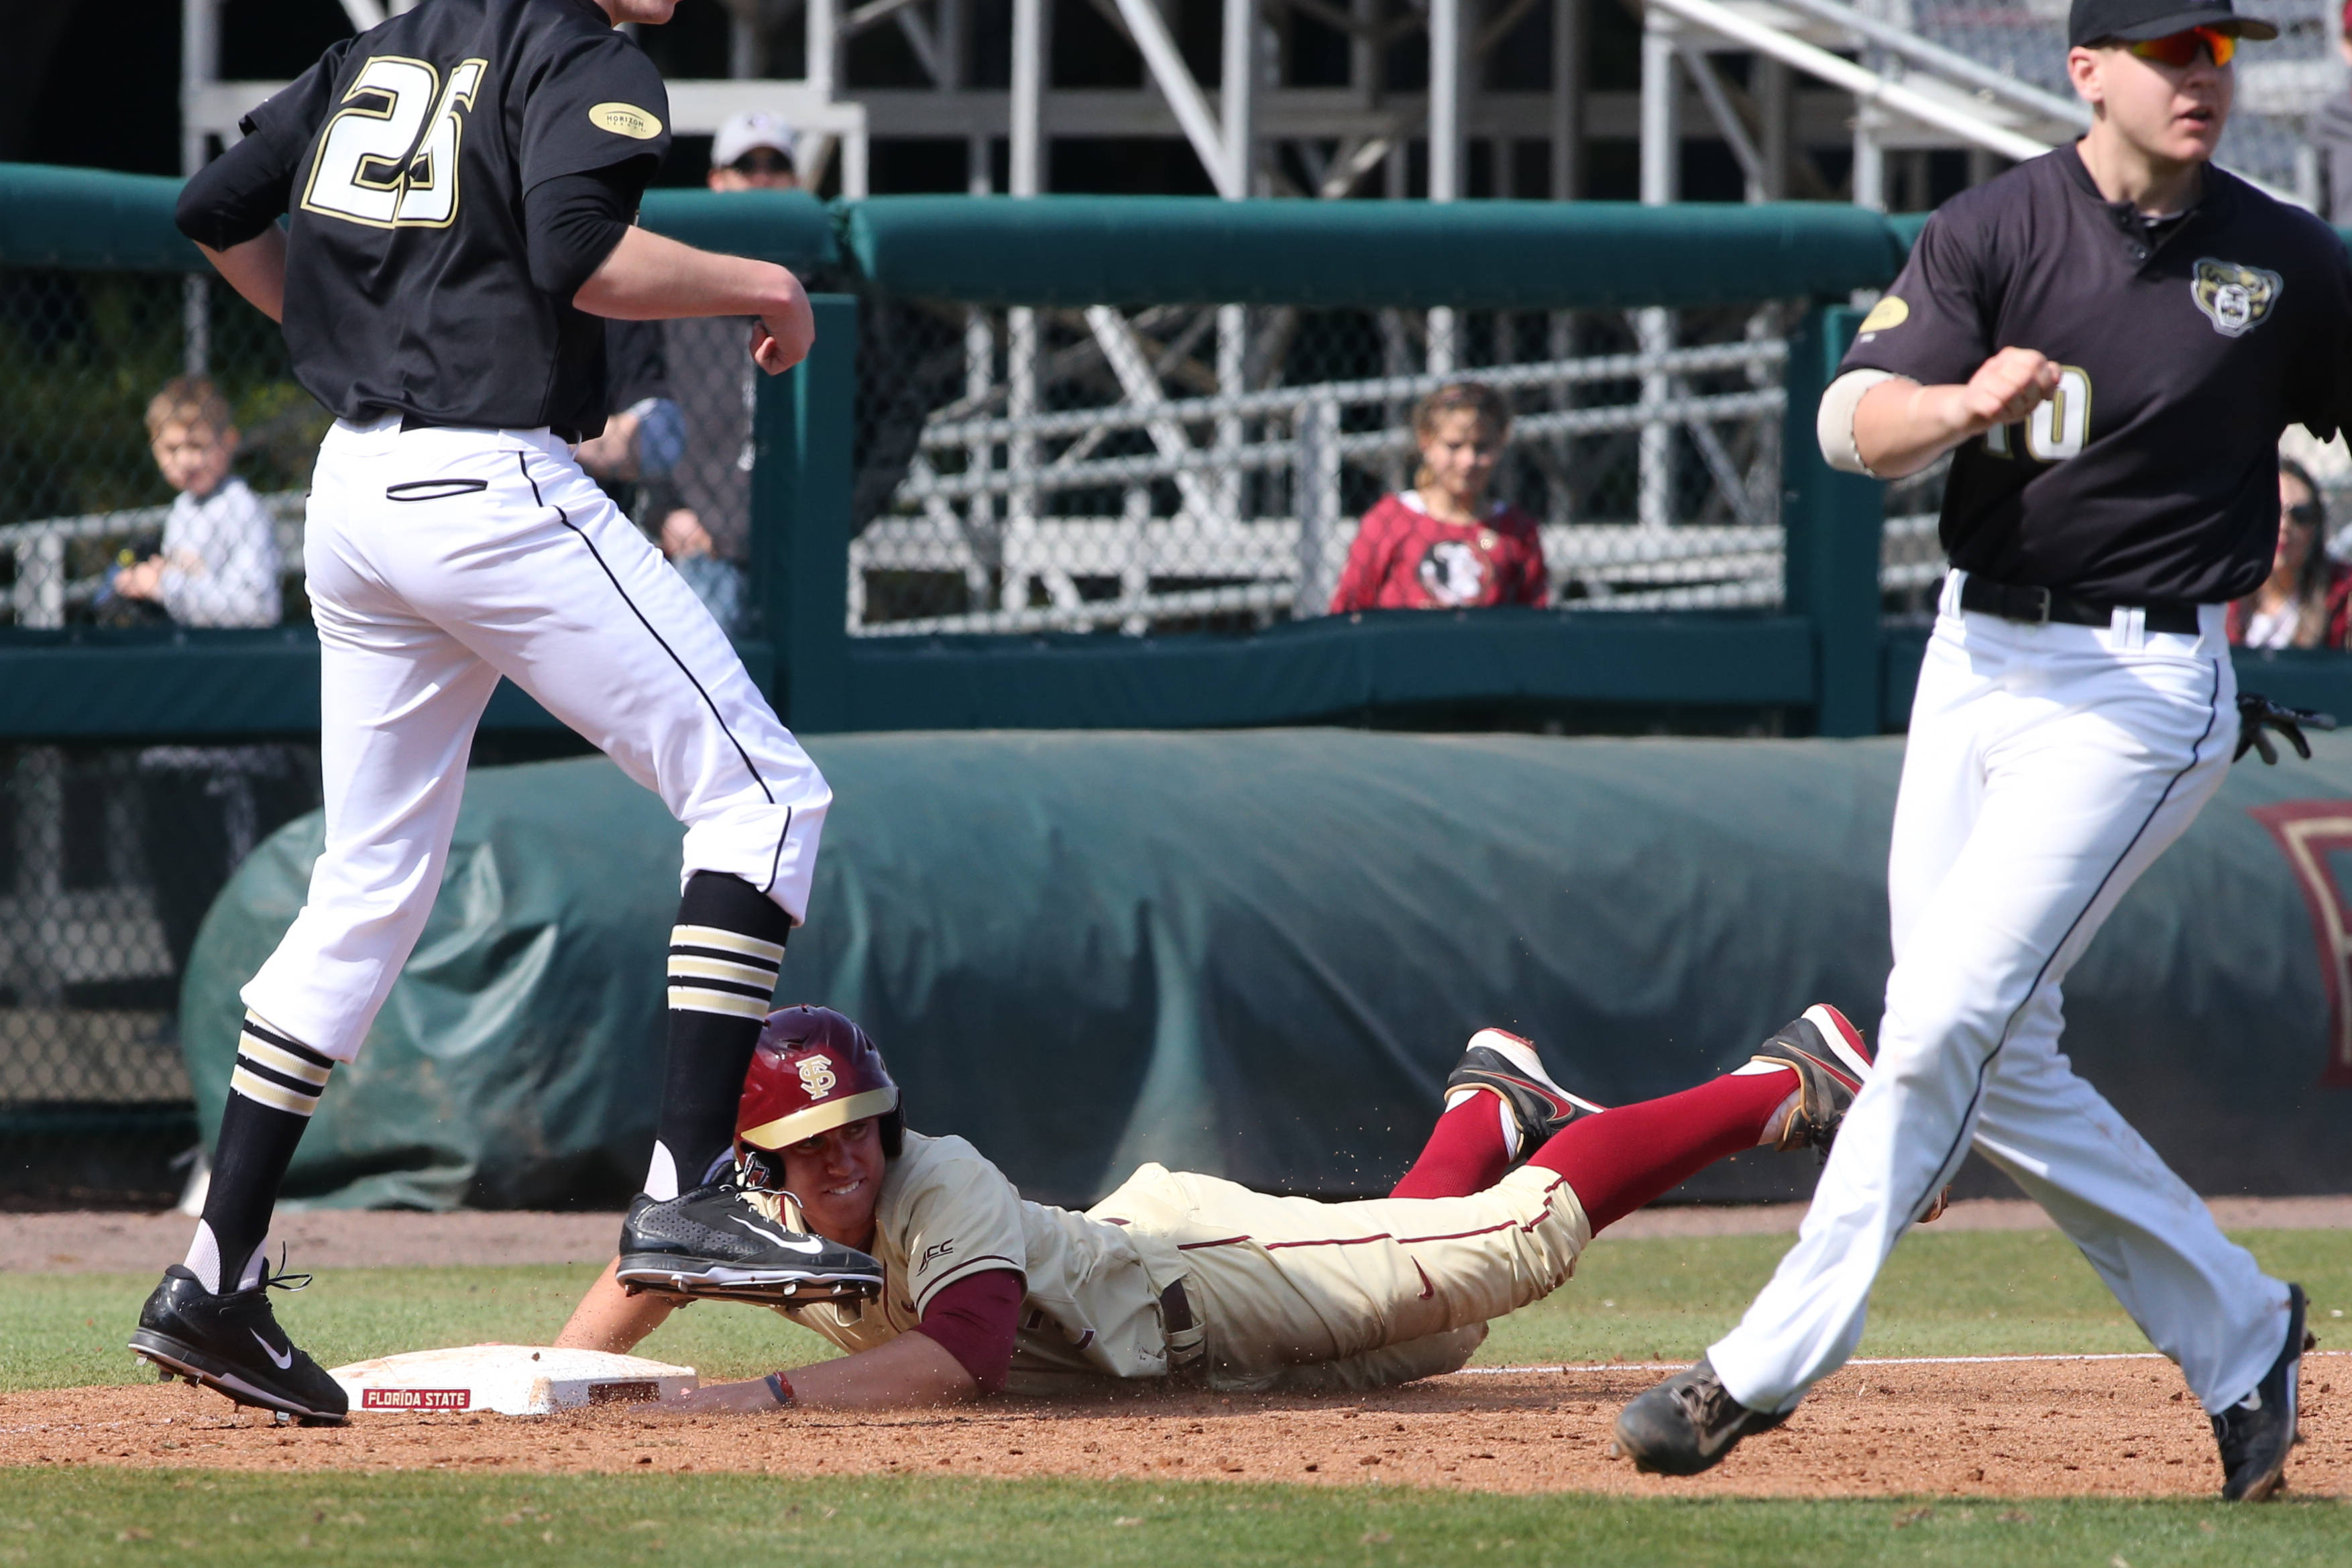 Florida State vs Oakland – Game 3